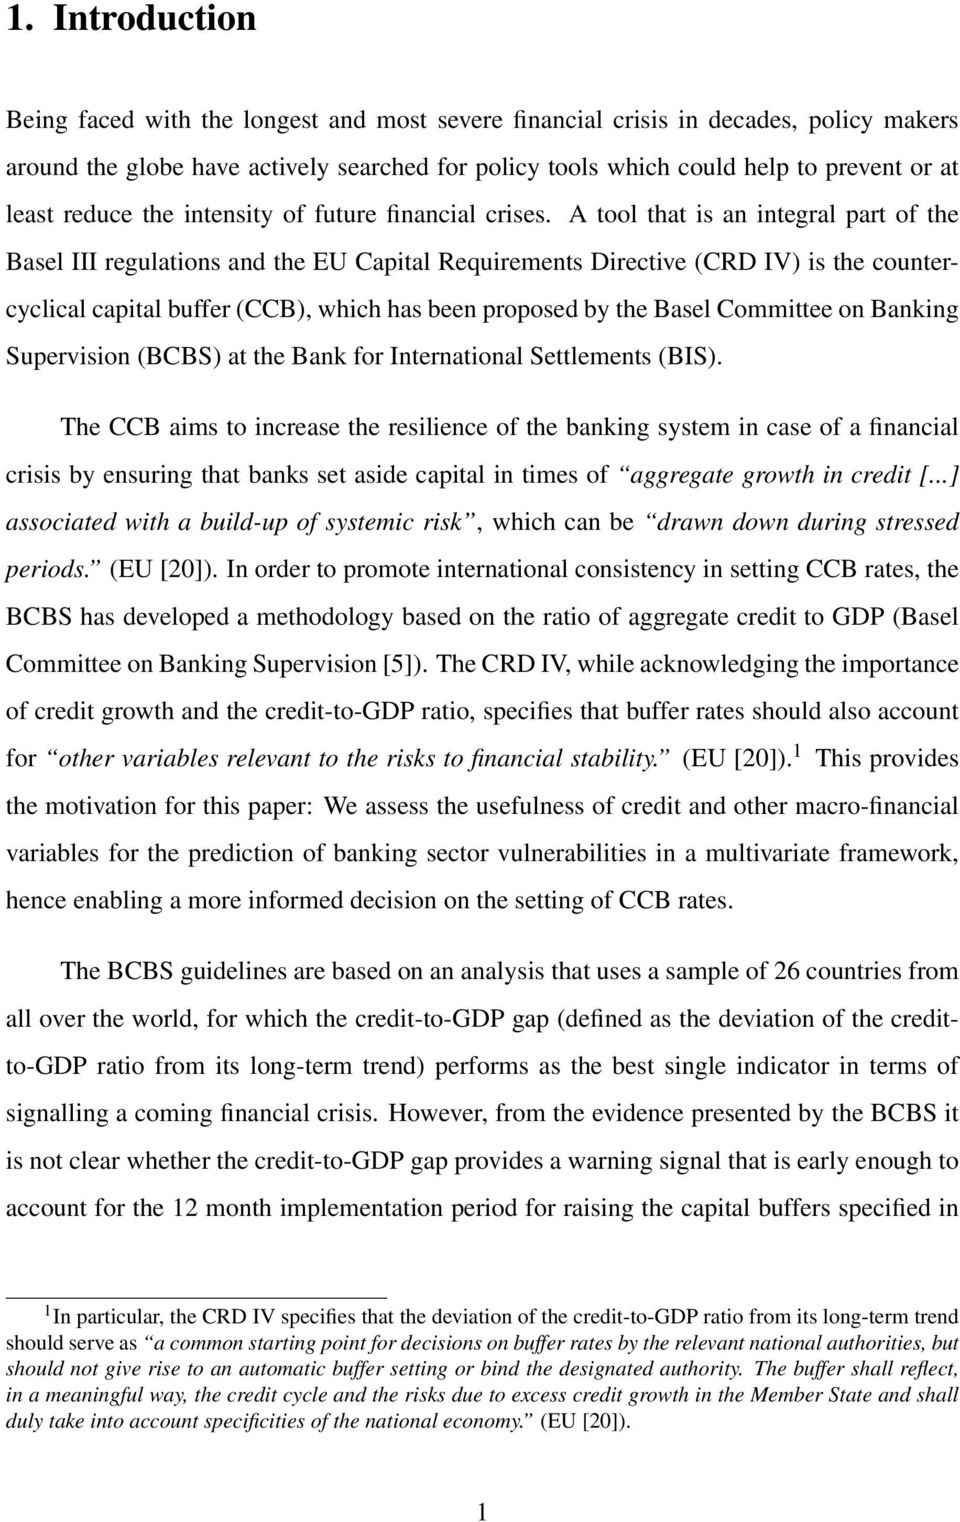 A tool that is an integral part of the Basel III regulations and the EU Capital Requirements Directive (CRD IV) is the countercyclical capital buffer (CCB), which has been proposed by the Basel